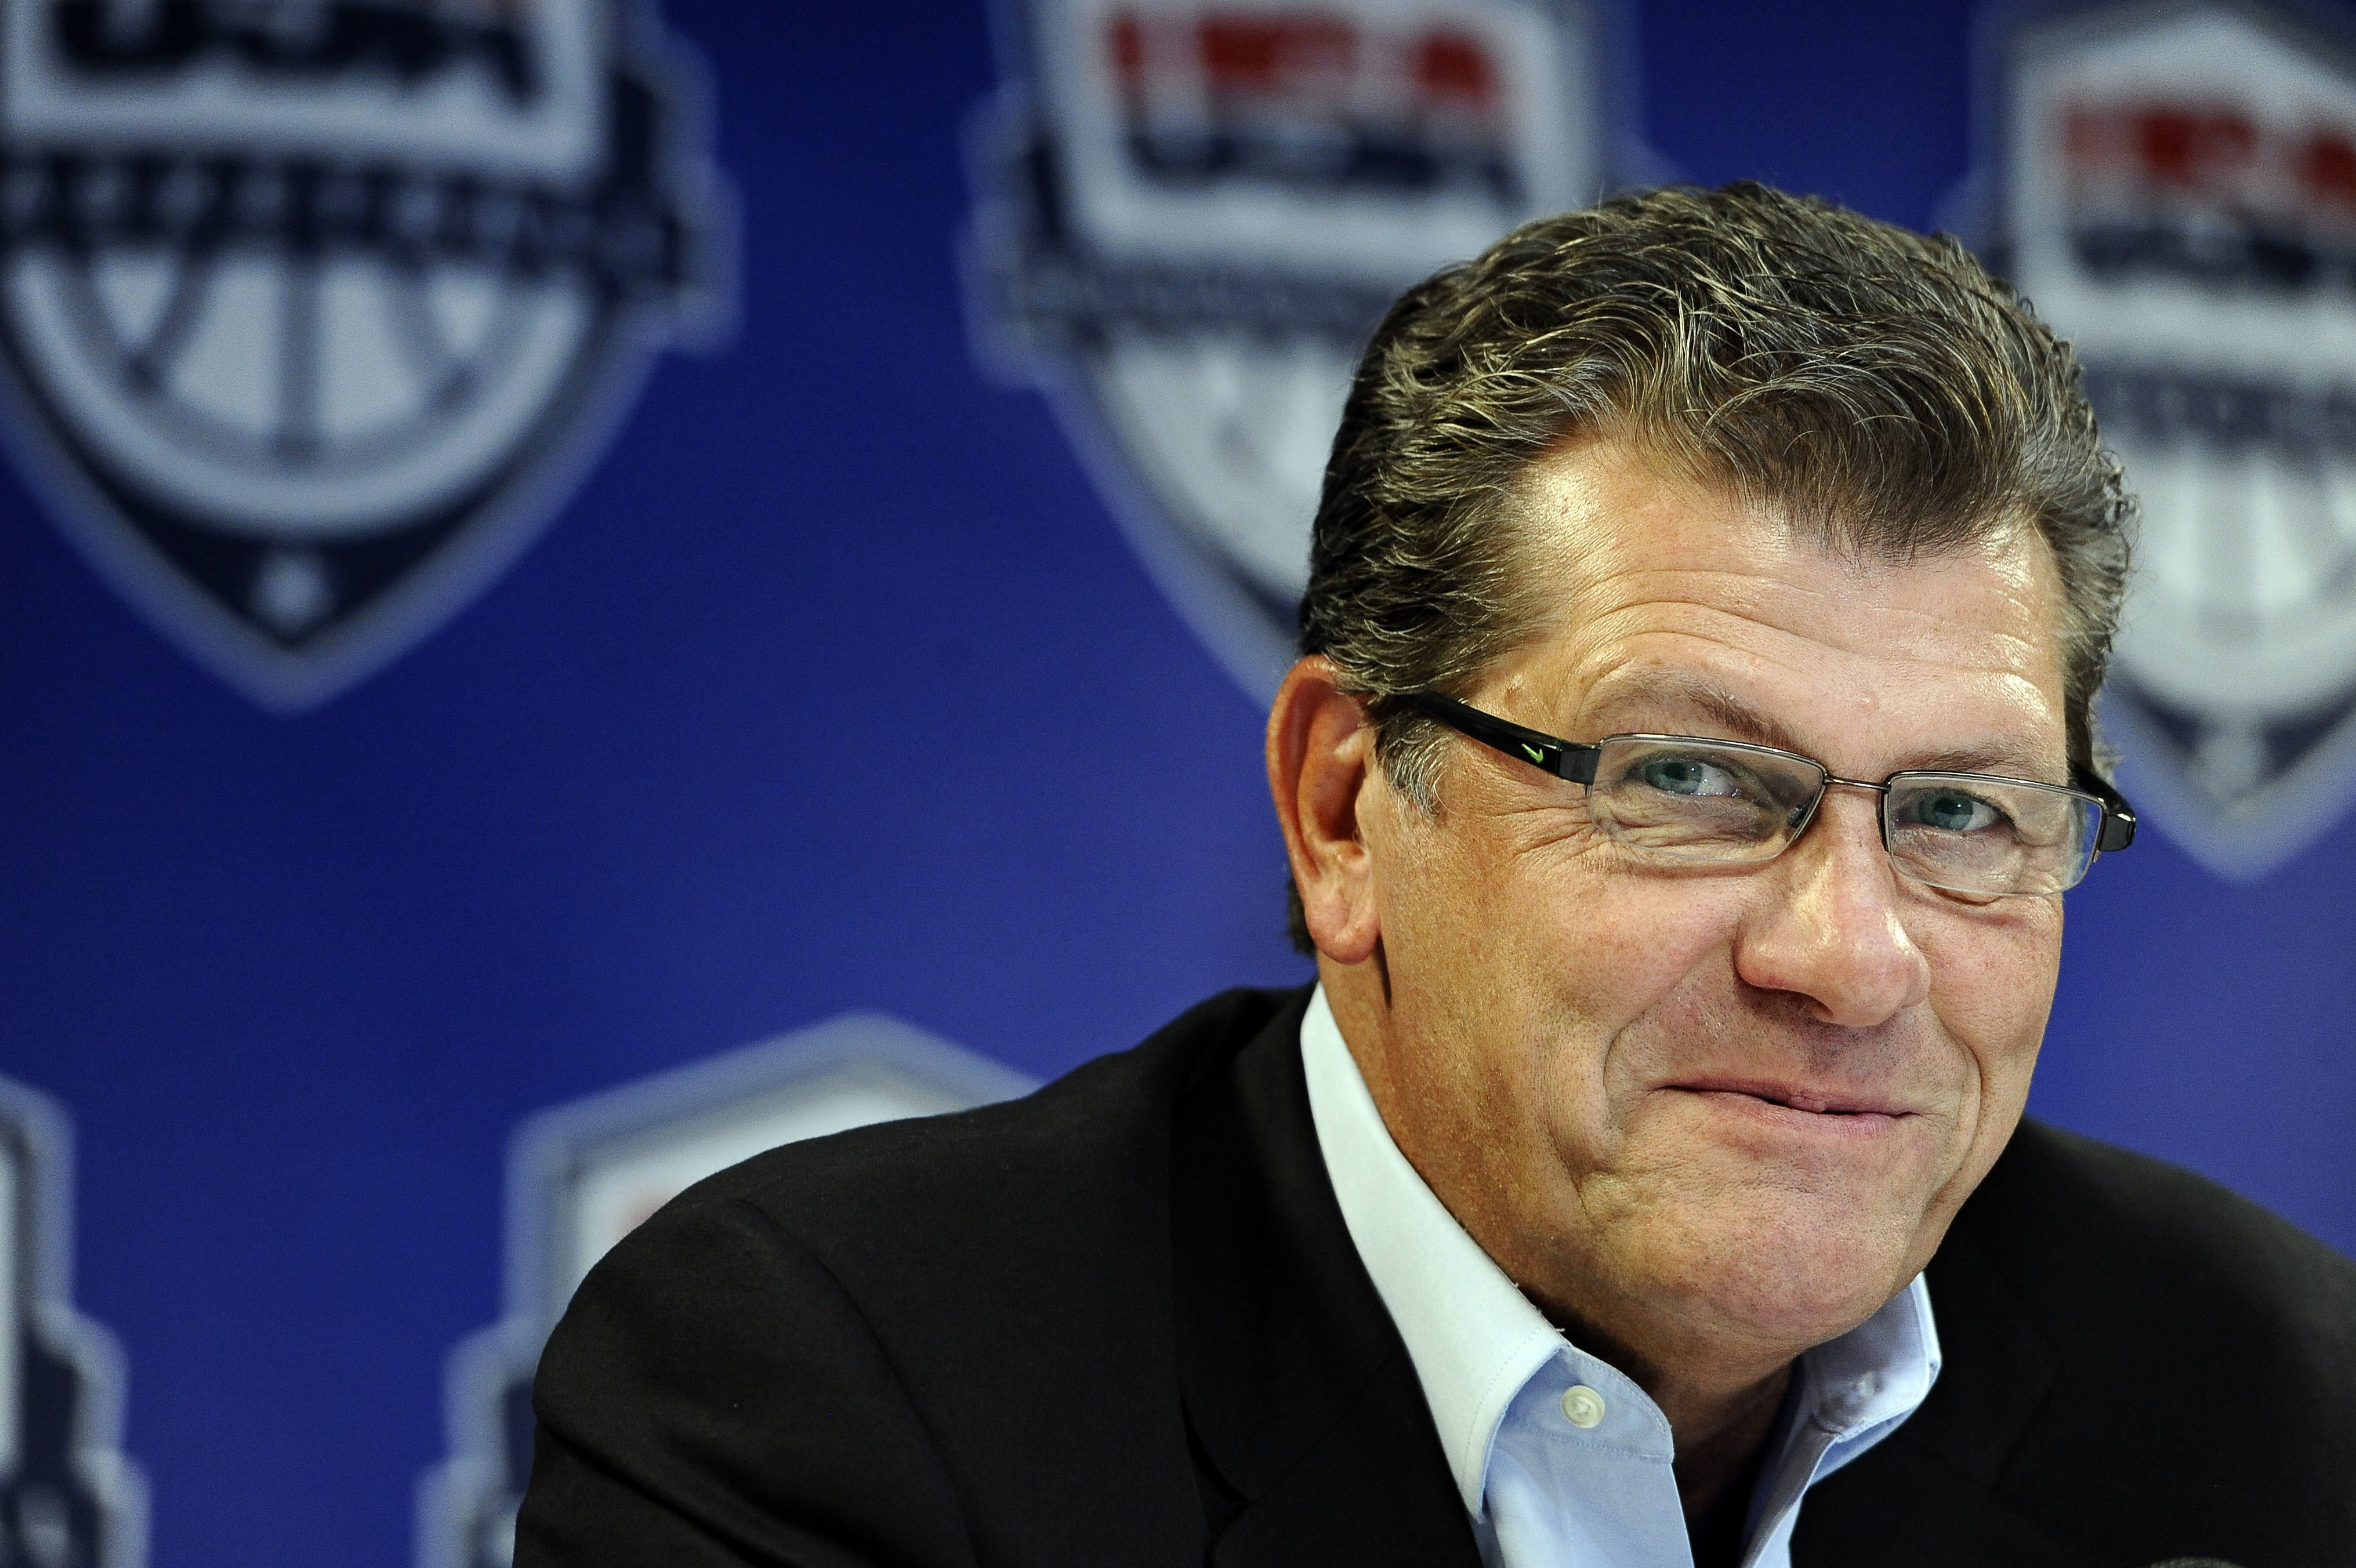 FILE - In this Sept. 6, 2013, file photo, Connecticut head coach Geno Auriemma speaks during a news conference announcing he will head the U.S. women's basketball team at the 2016 Rio de Janeiro Olympics, in Storrs, Conn. No team has been more dominant at